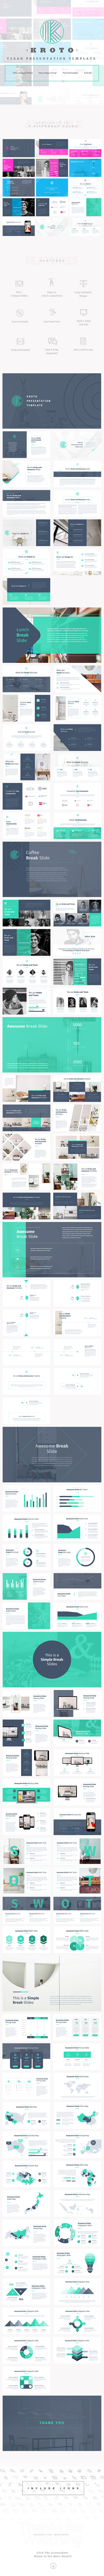 Kroto Powerpoint Template - Creative PowerPoint Templates